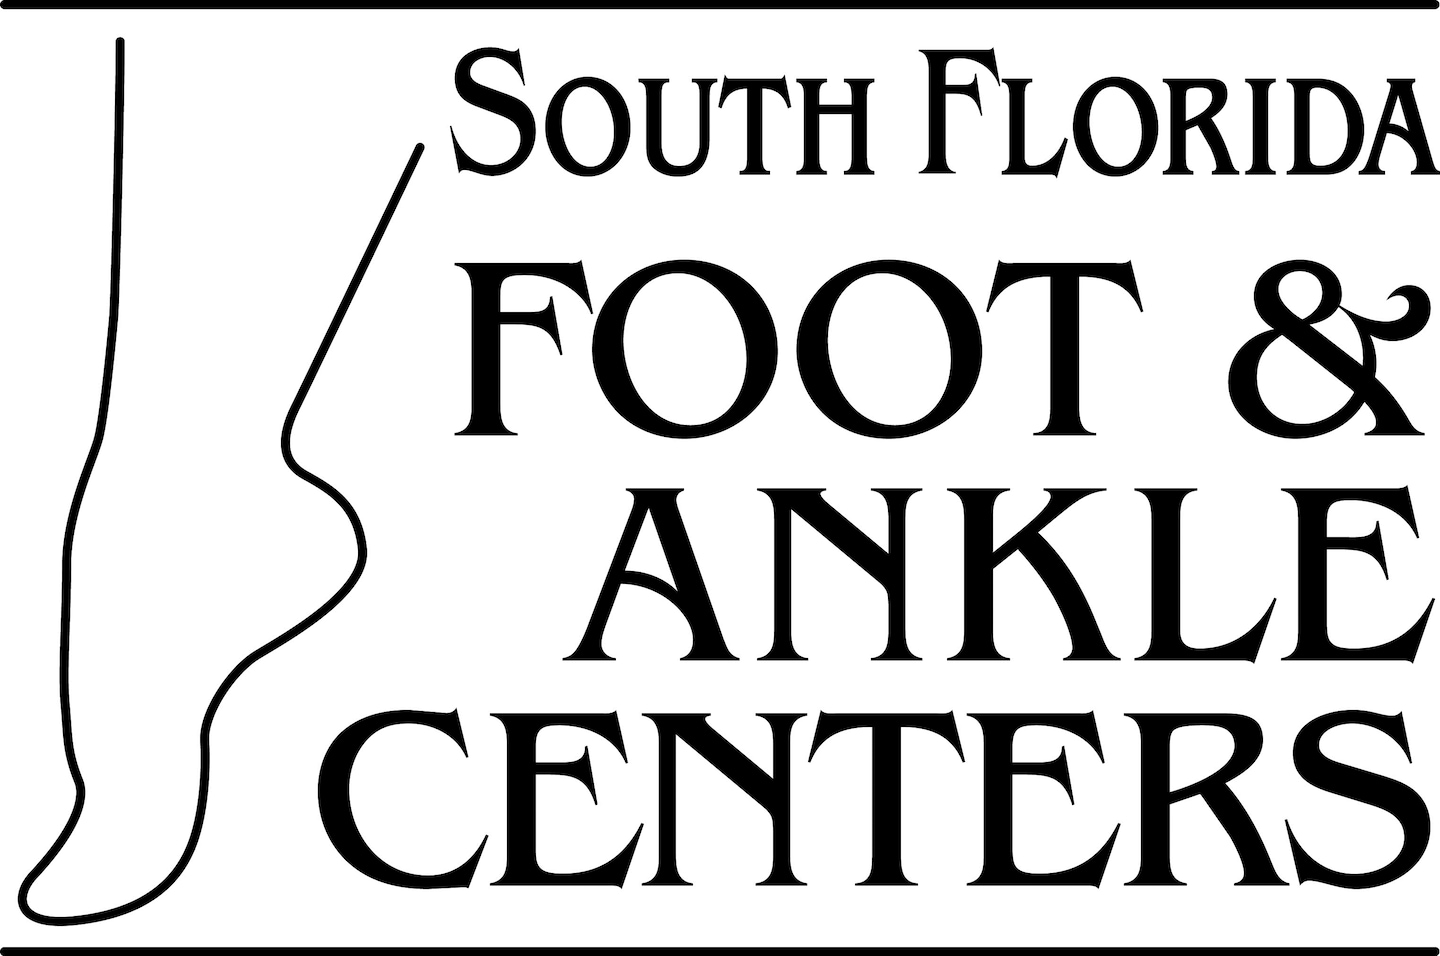 S Florida Foot & Ankle Centers - Royal Palm Beach